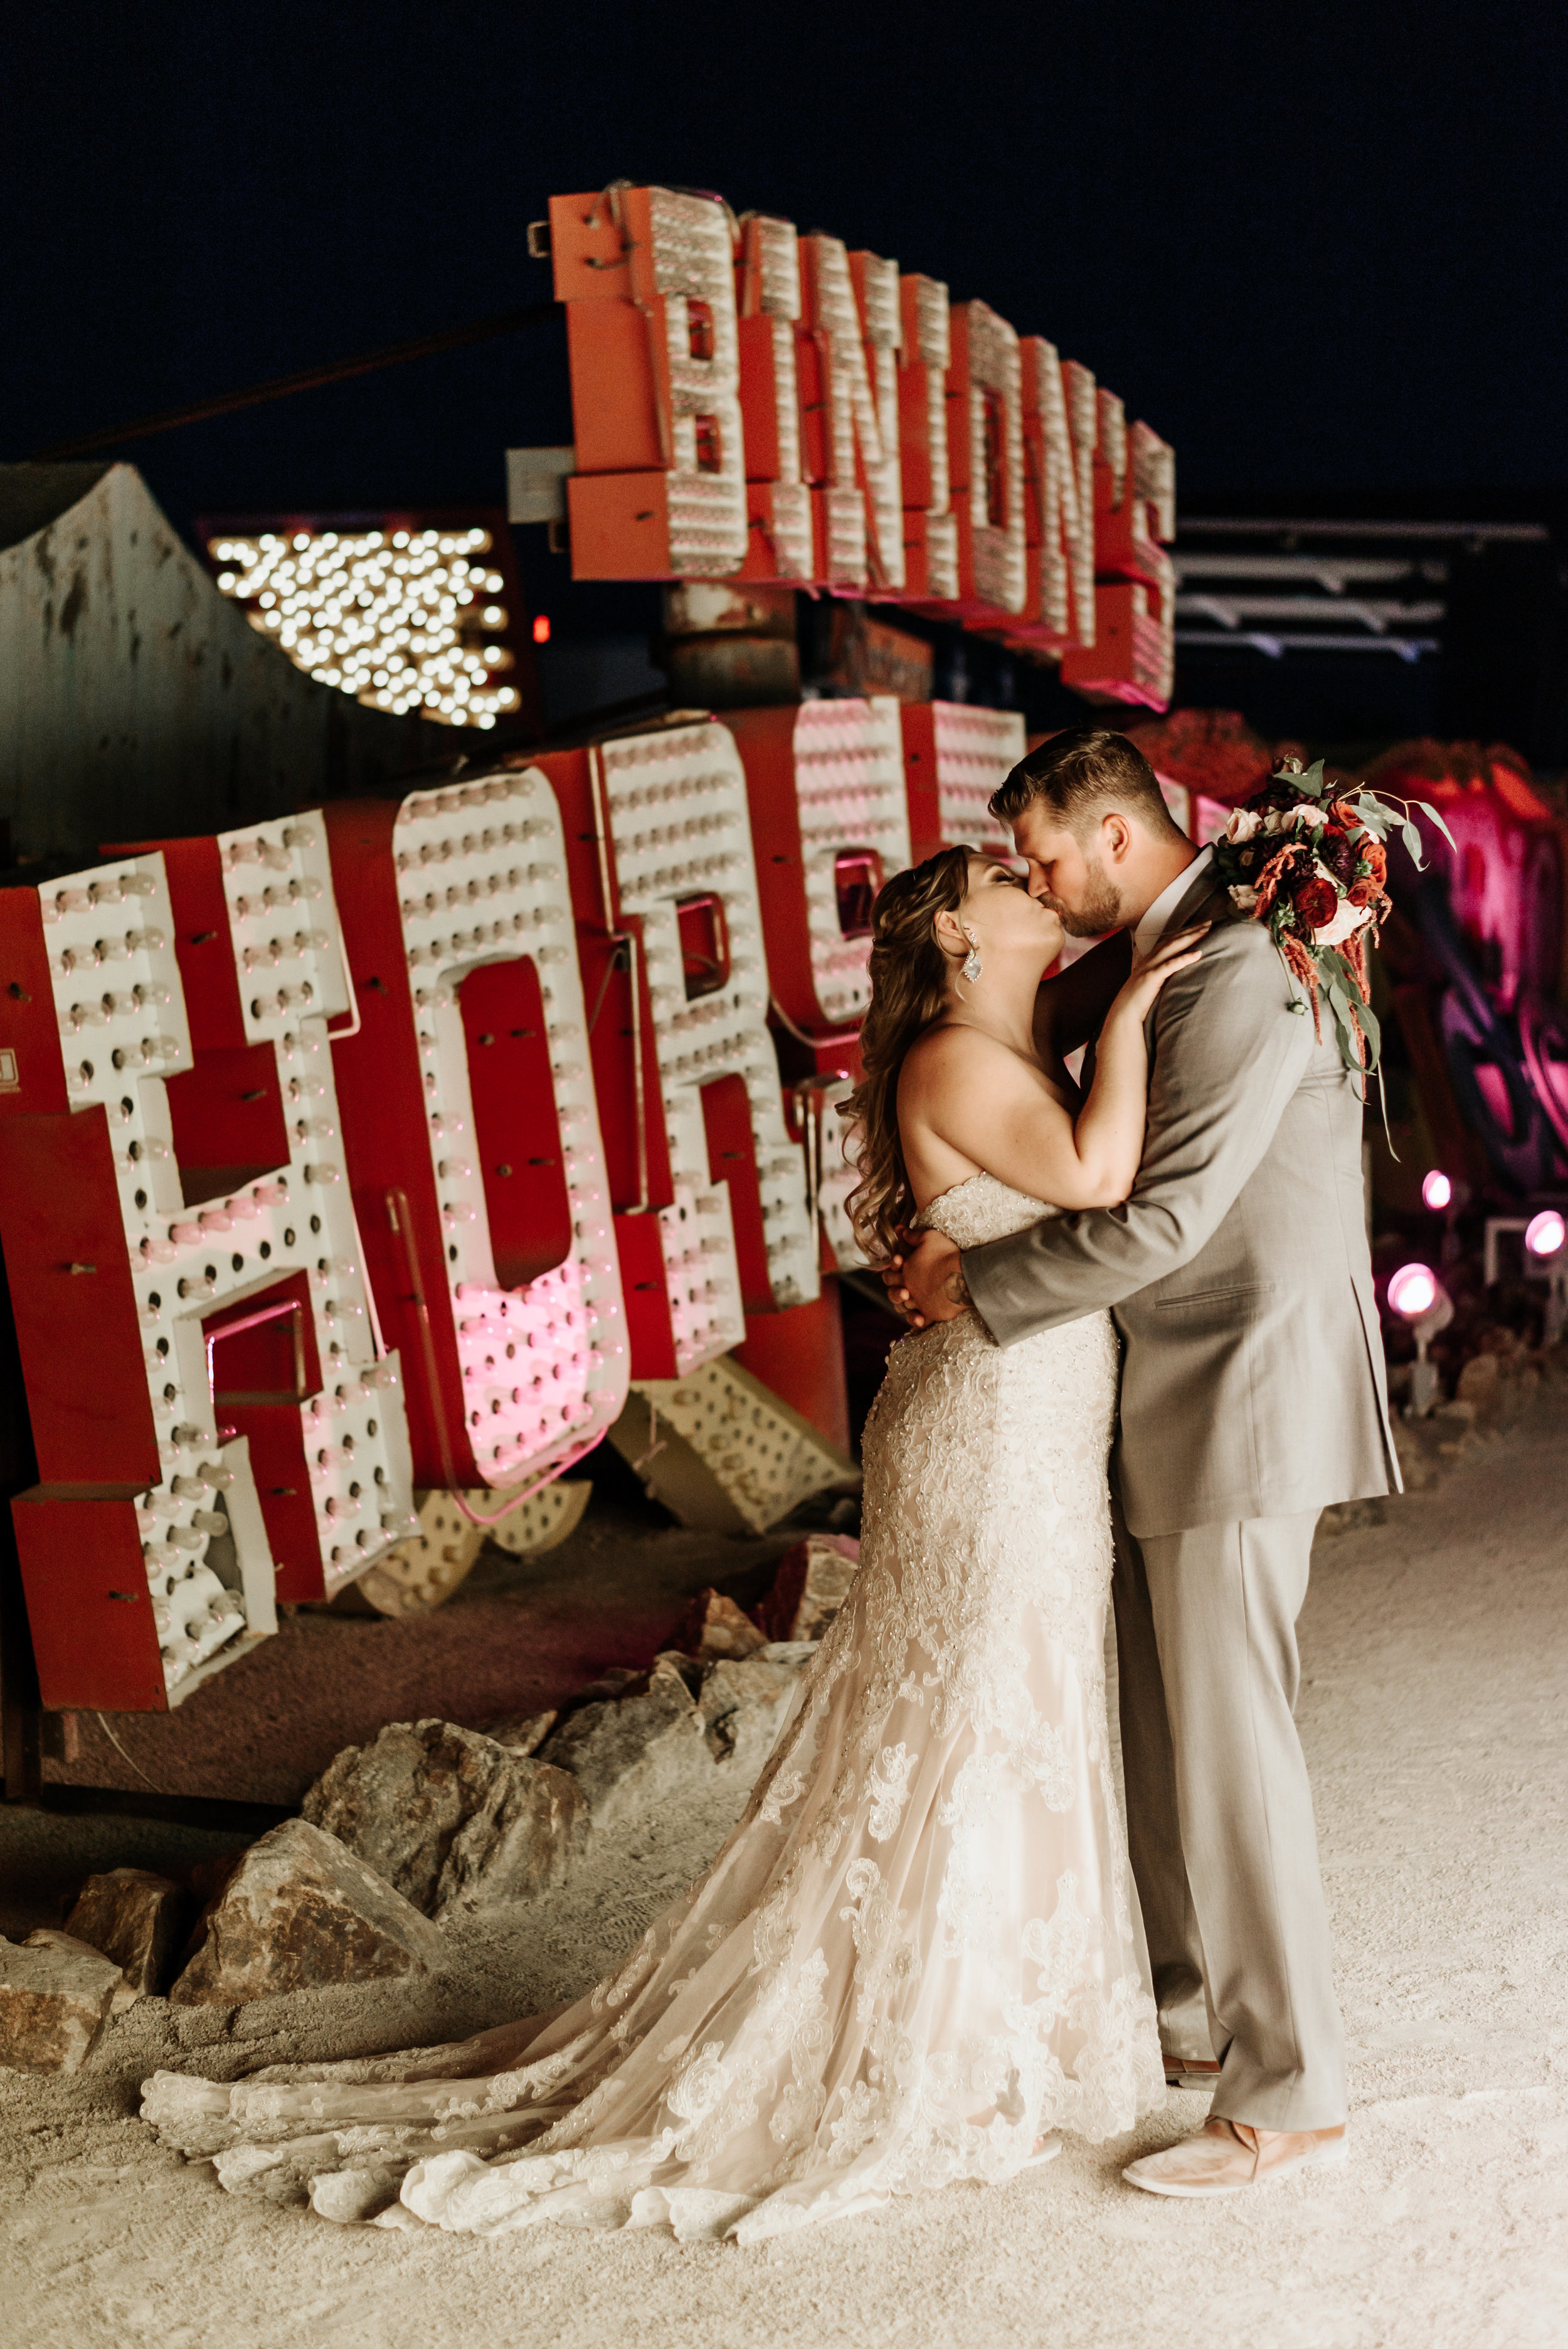 Neon-Museum-Wedding-Las-Vegas-Nevada-Golden-Nugget-Photography-by-V-Ally-and-Dan-6972.jpg